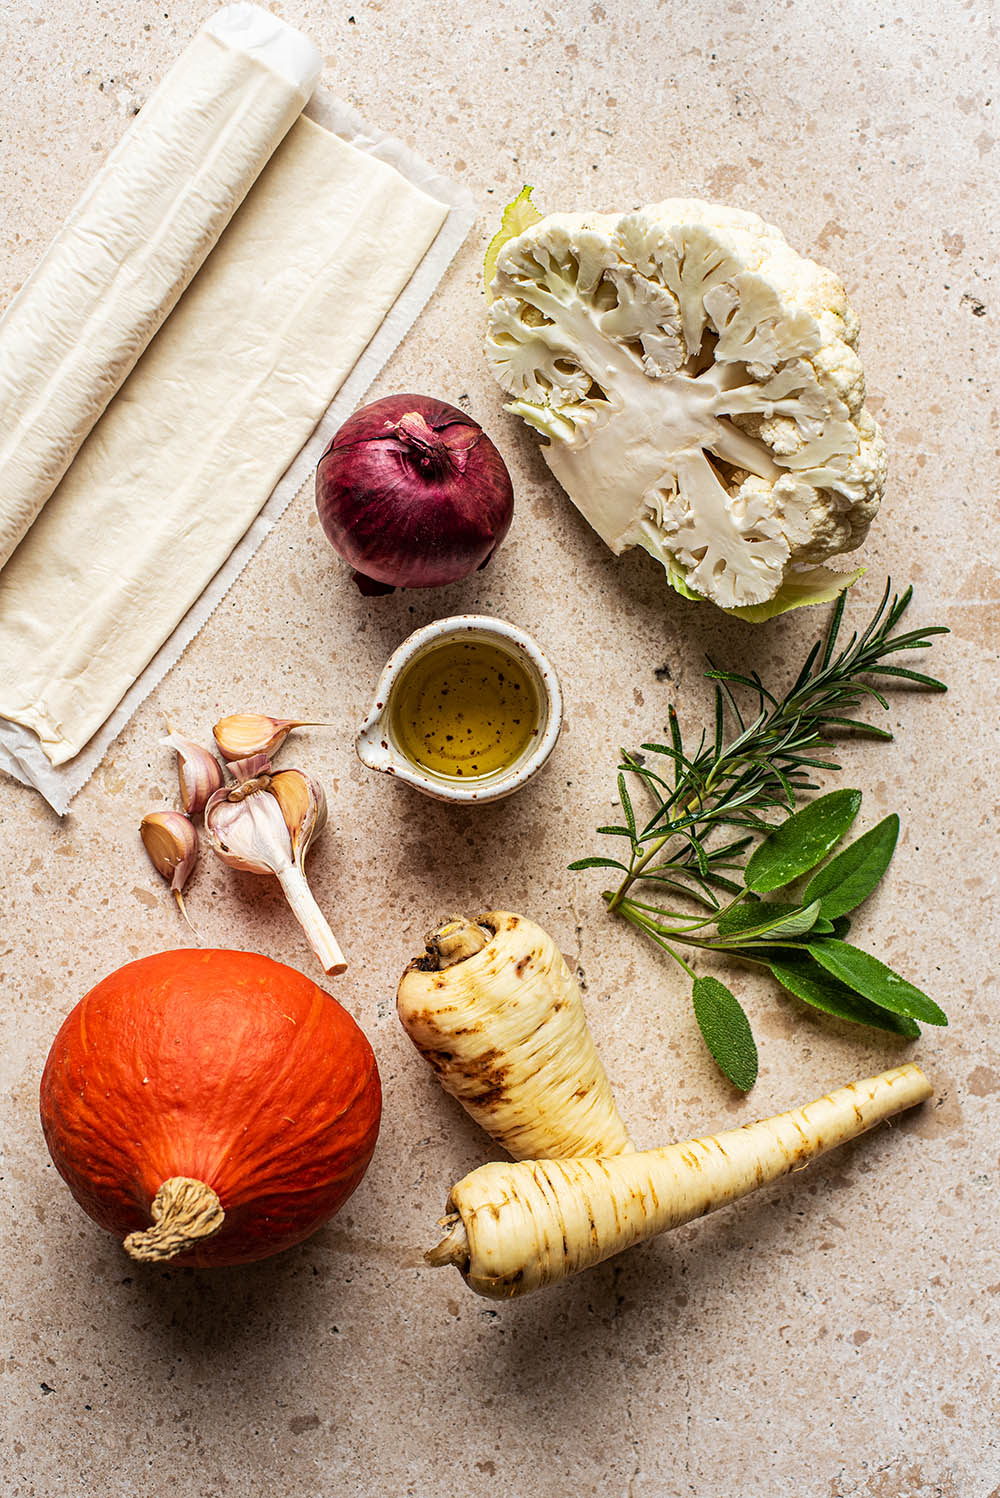 Roasted vegetable pie ingredients.